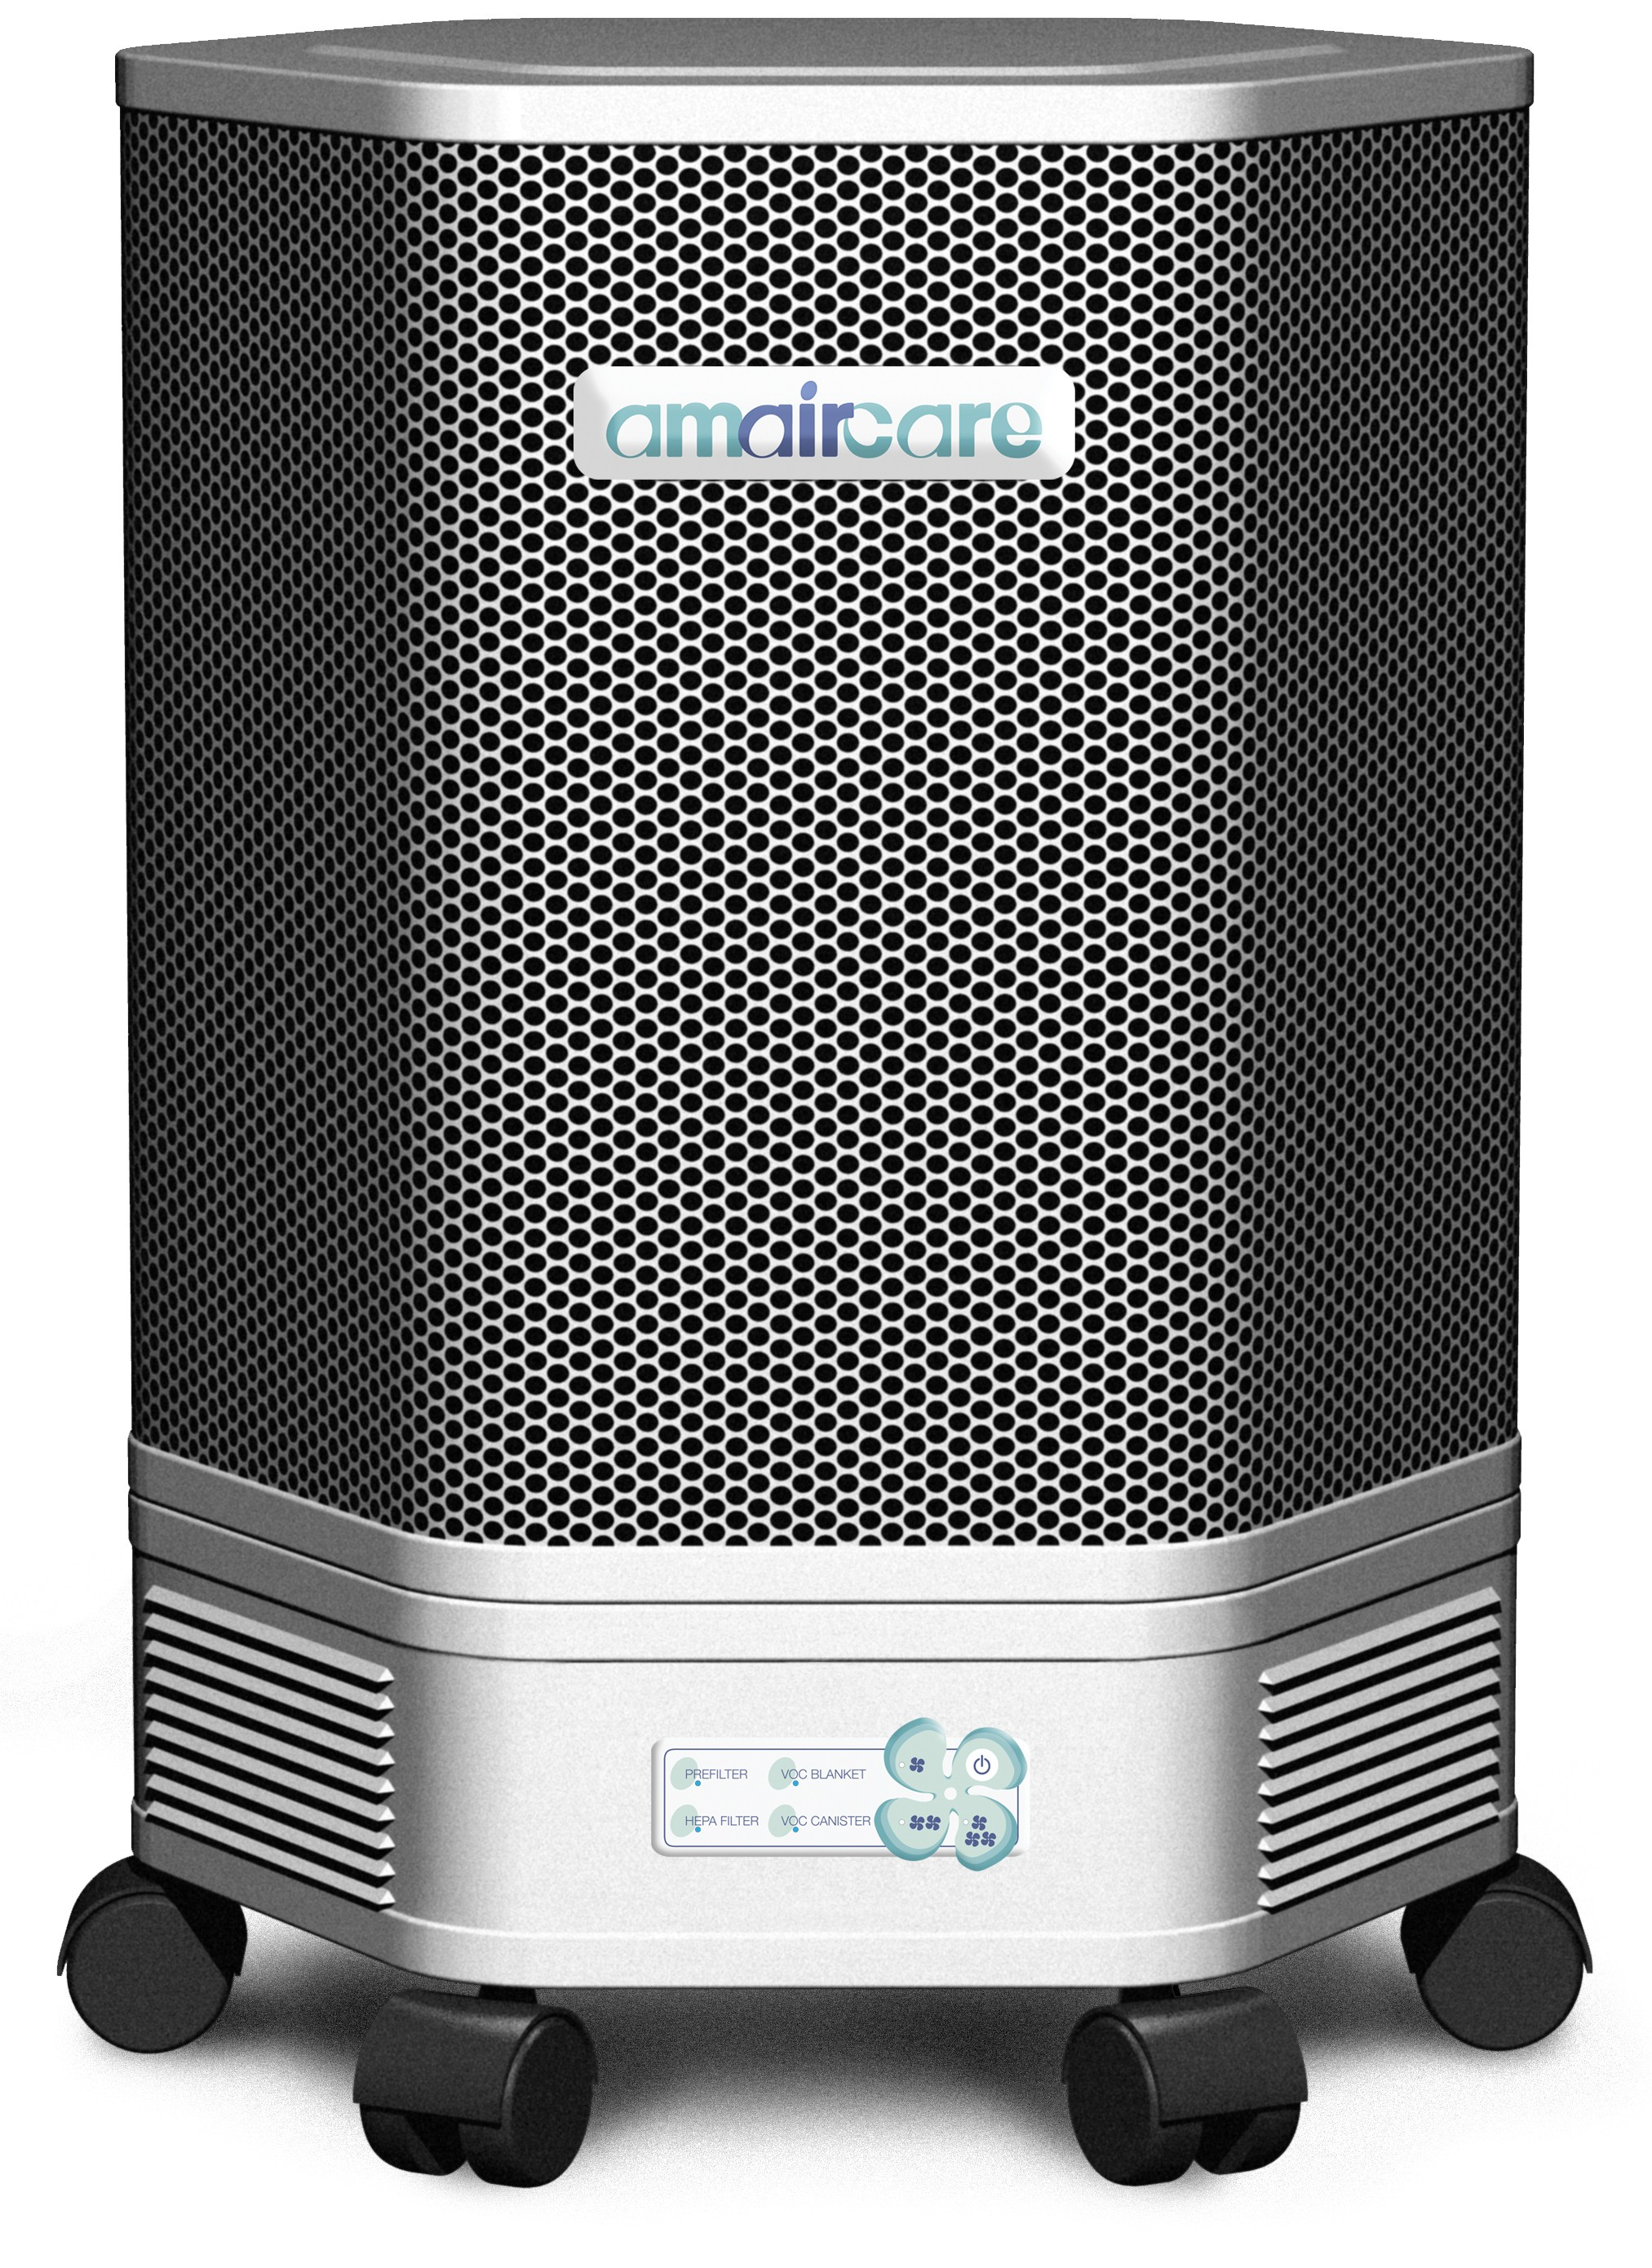 Portable Hepa Air Purifiers : Amaircare portable hepa air purifier white